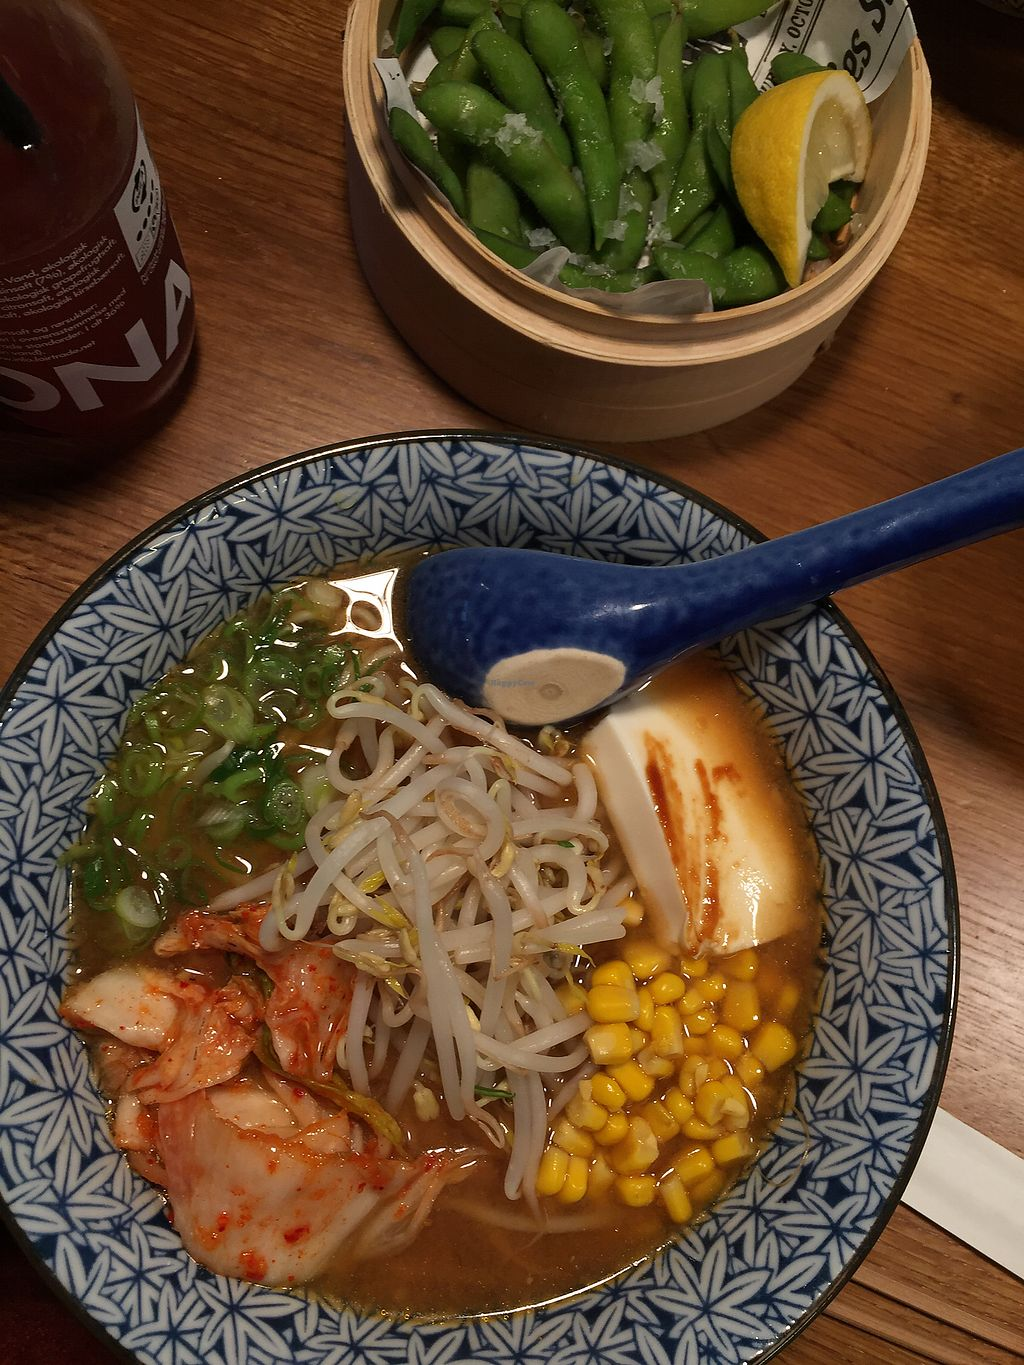 """Photo of Papa Ramen - Studiestræde  by <a href=""""/members/profile/greenx"""">greenx</a> <br/>Vegan Ramen with Edamame <br/> October 27, 2017  - <a href='/contact/abuse/image/84123/319276'>Report</a>"""